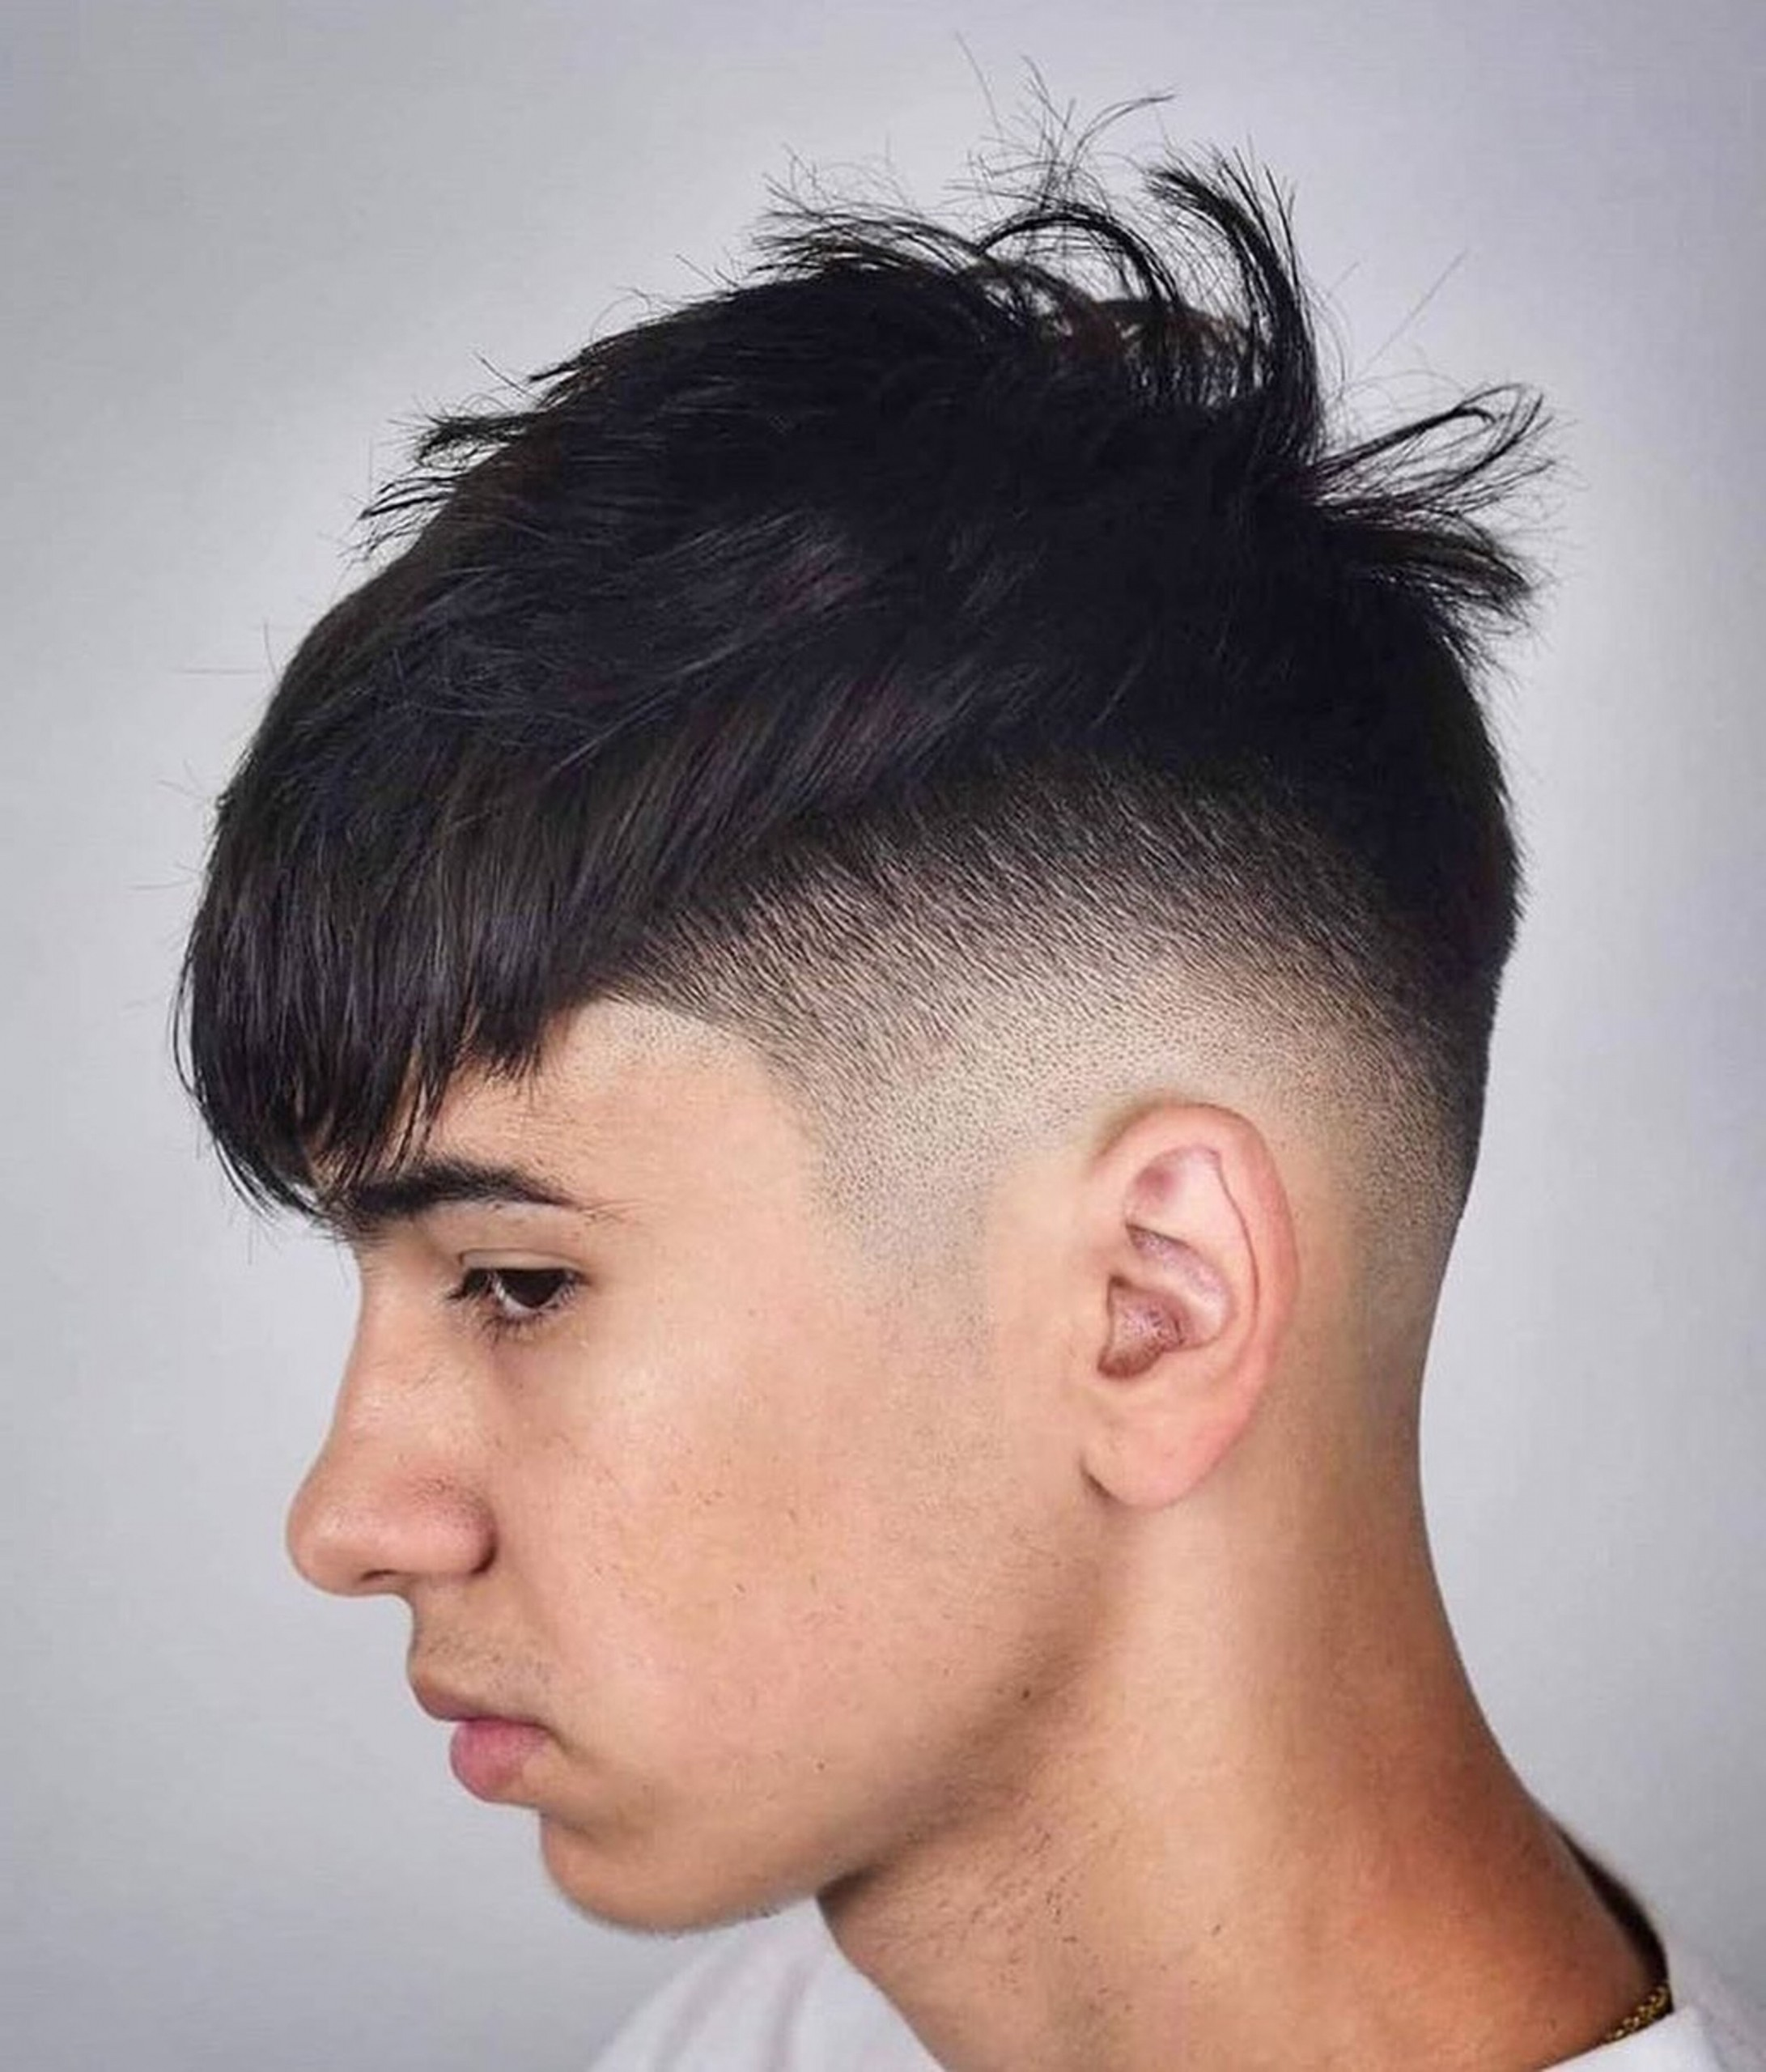 A taper fade haircut for boys.